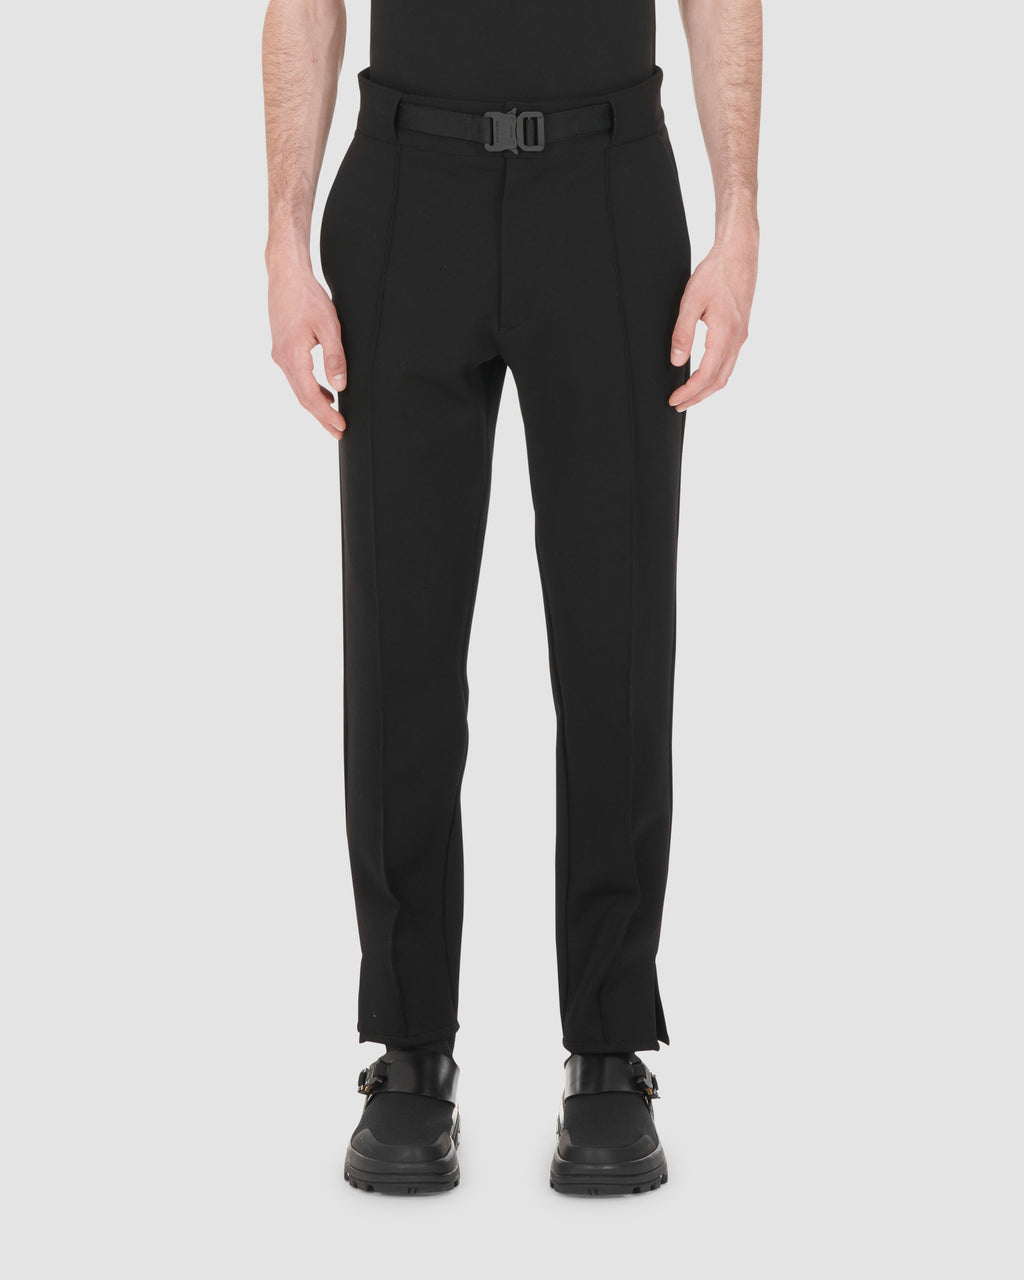 BLACK CLASSIC TROUSERS W BUCKLE